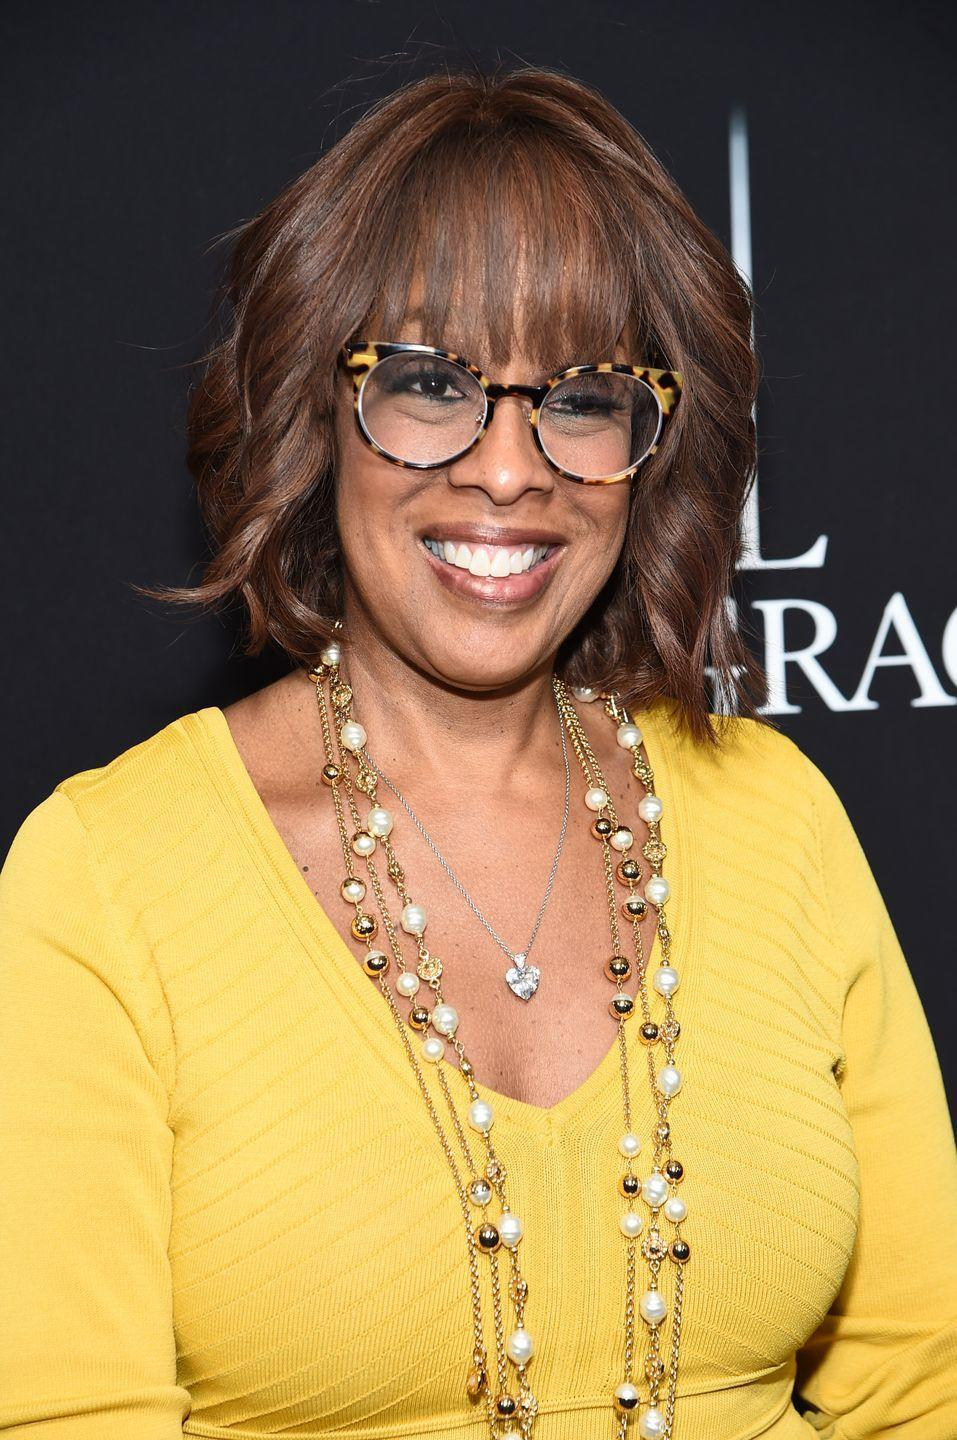 """<p>The casual everyday-bob gets a color update. Elevate a cut like television star<strong> Gayle King</strong>'s by incorporating two-toned highlights to your base and keeping your strands sleek.</p><p><strong>RELATED: </strong><a href=""""https://www.goodhousekeeping.com/beauty/hair/g3027/best-hair-color-trends/"""" rel=""""nofollow noopener"""" target=""""_blank"""" data-ylk=""""slk:The 50 Best Hair Color Trends for 2021"""" class=""""link rapid-noclick-resp"""">The 50 Best Hair Color Trends for 2021</a></p>"""